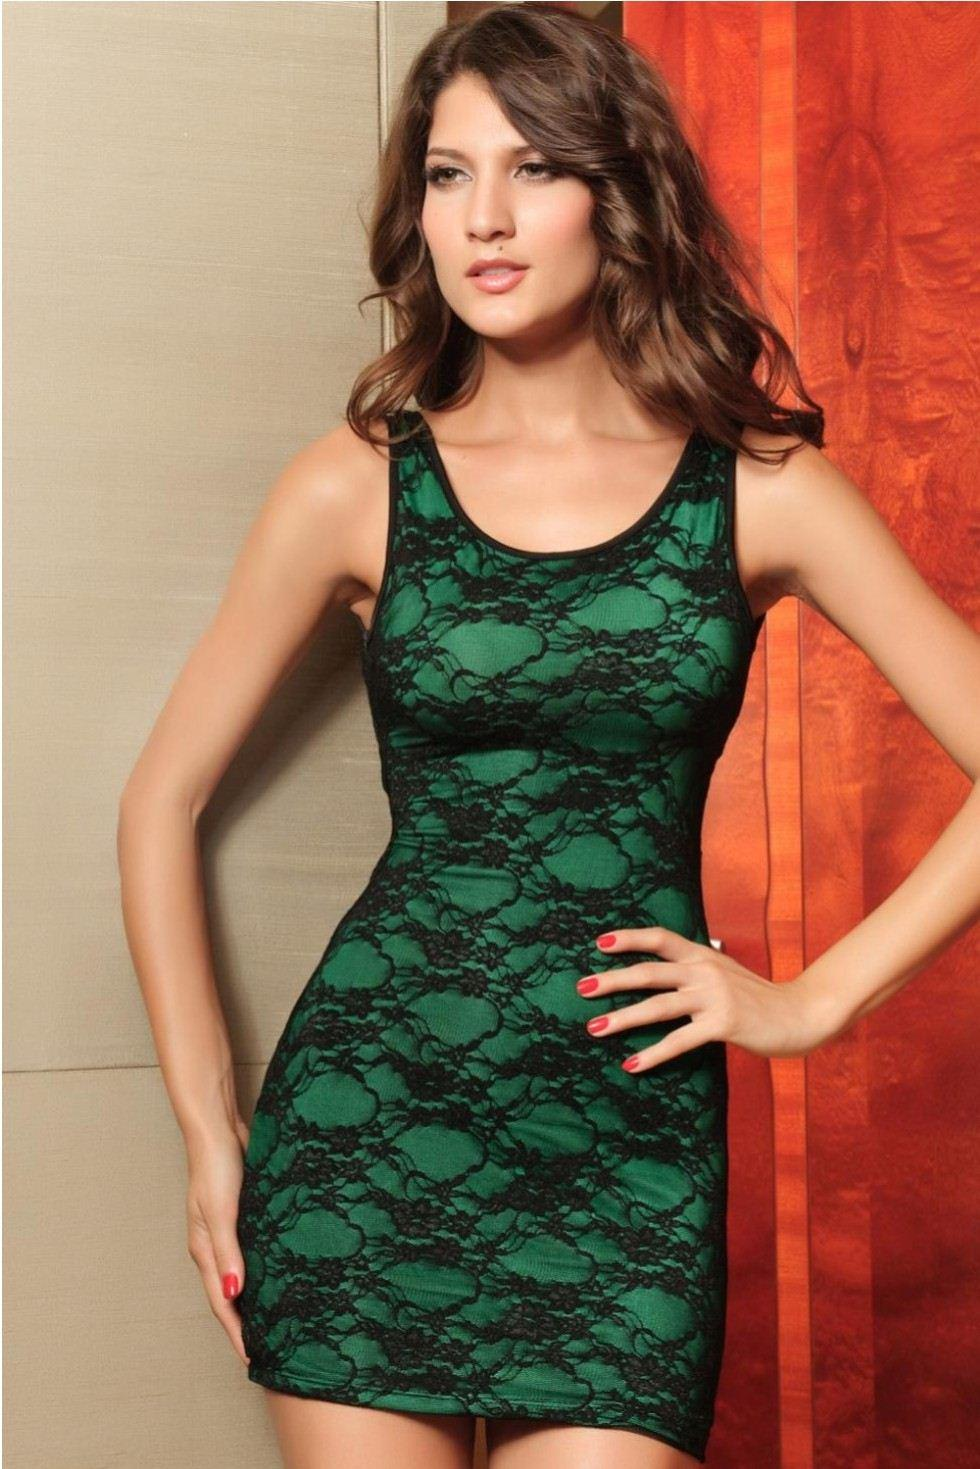 0901d1e7a793 Dress Casual Women Tight-fitting Lace Overlay Mini Dresses with Sexy ...